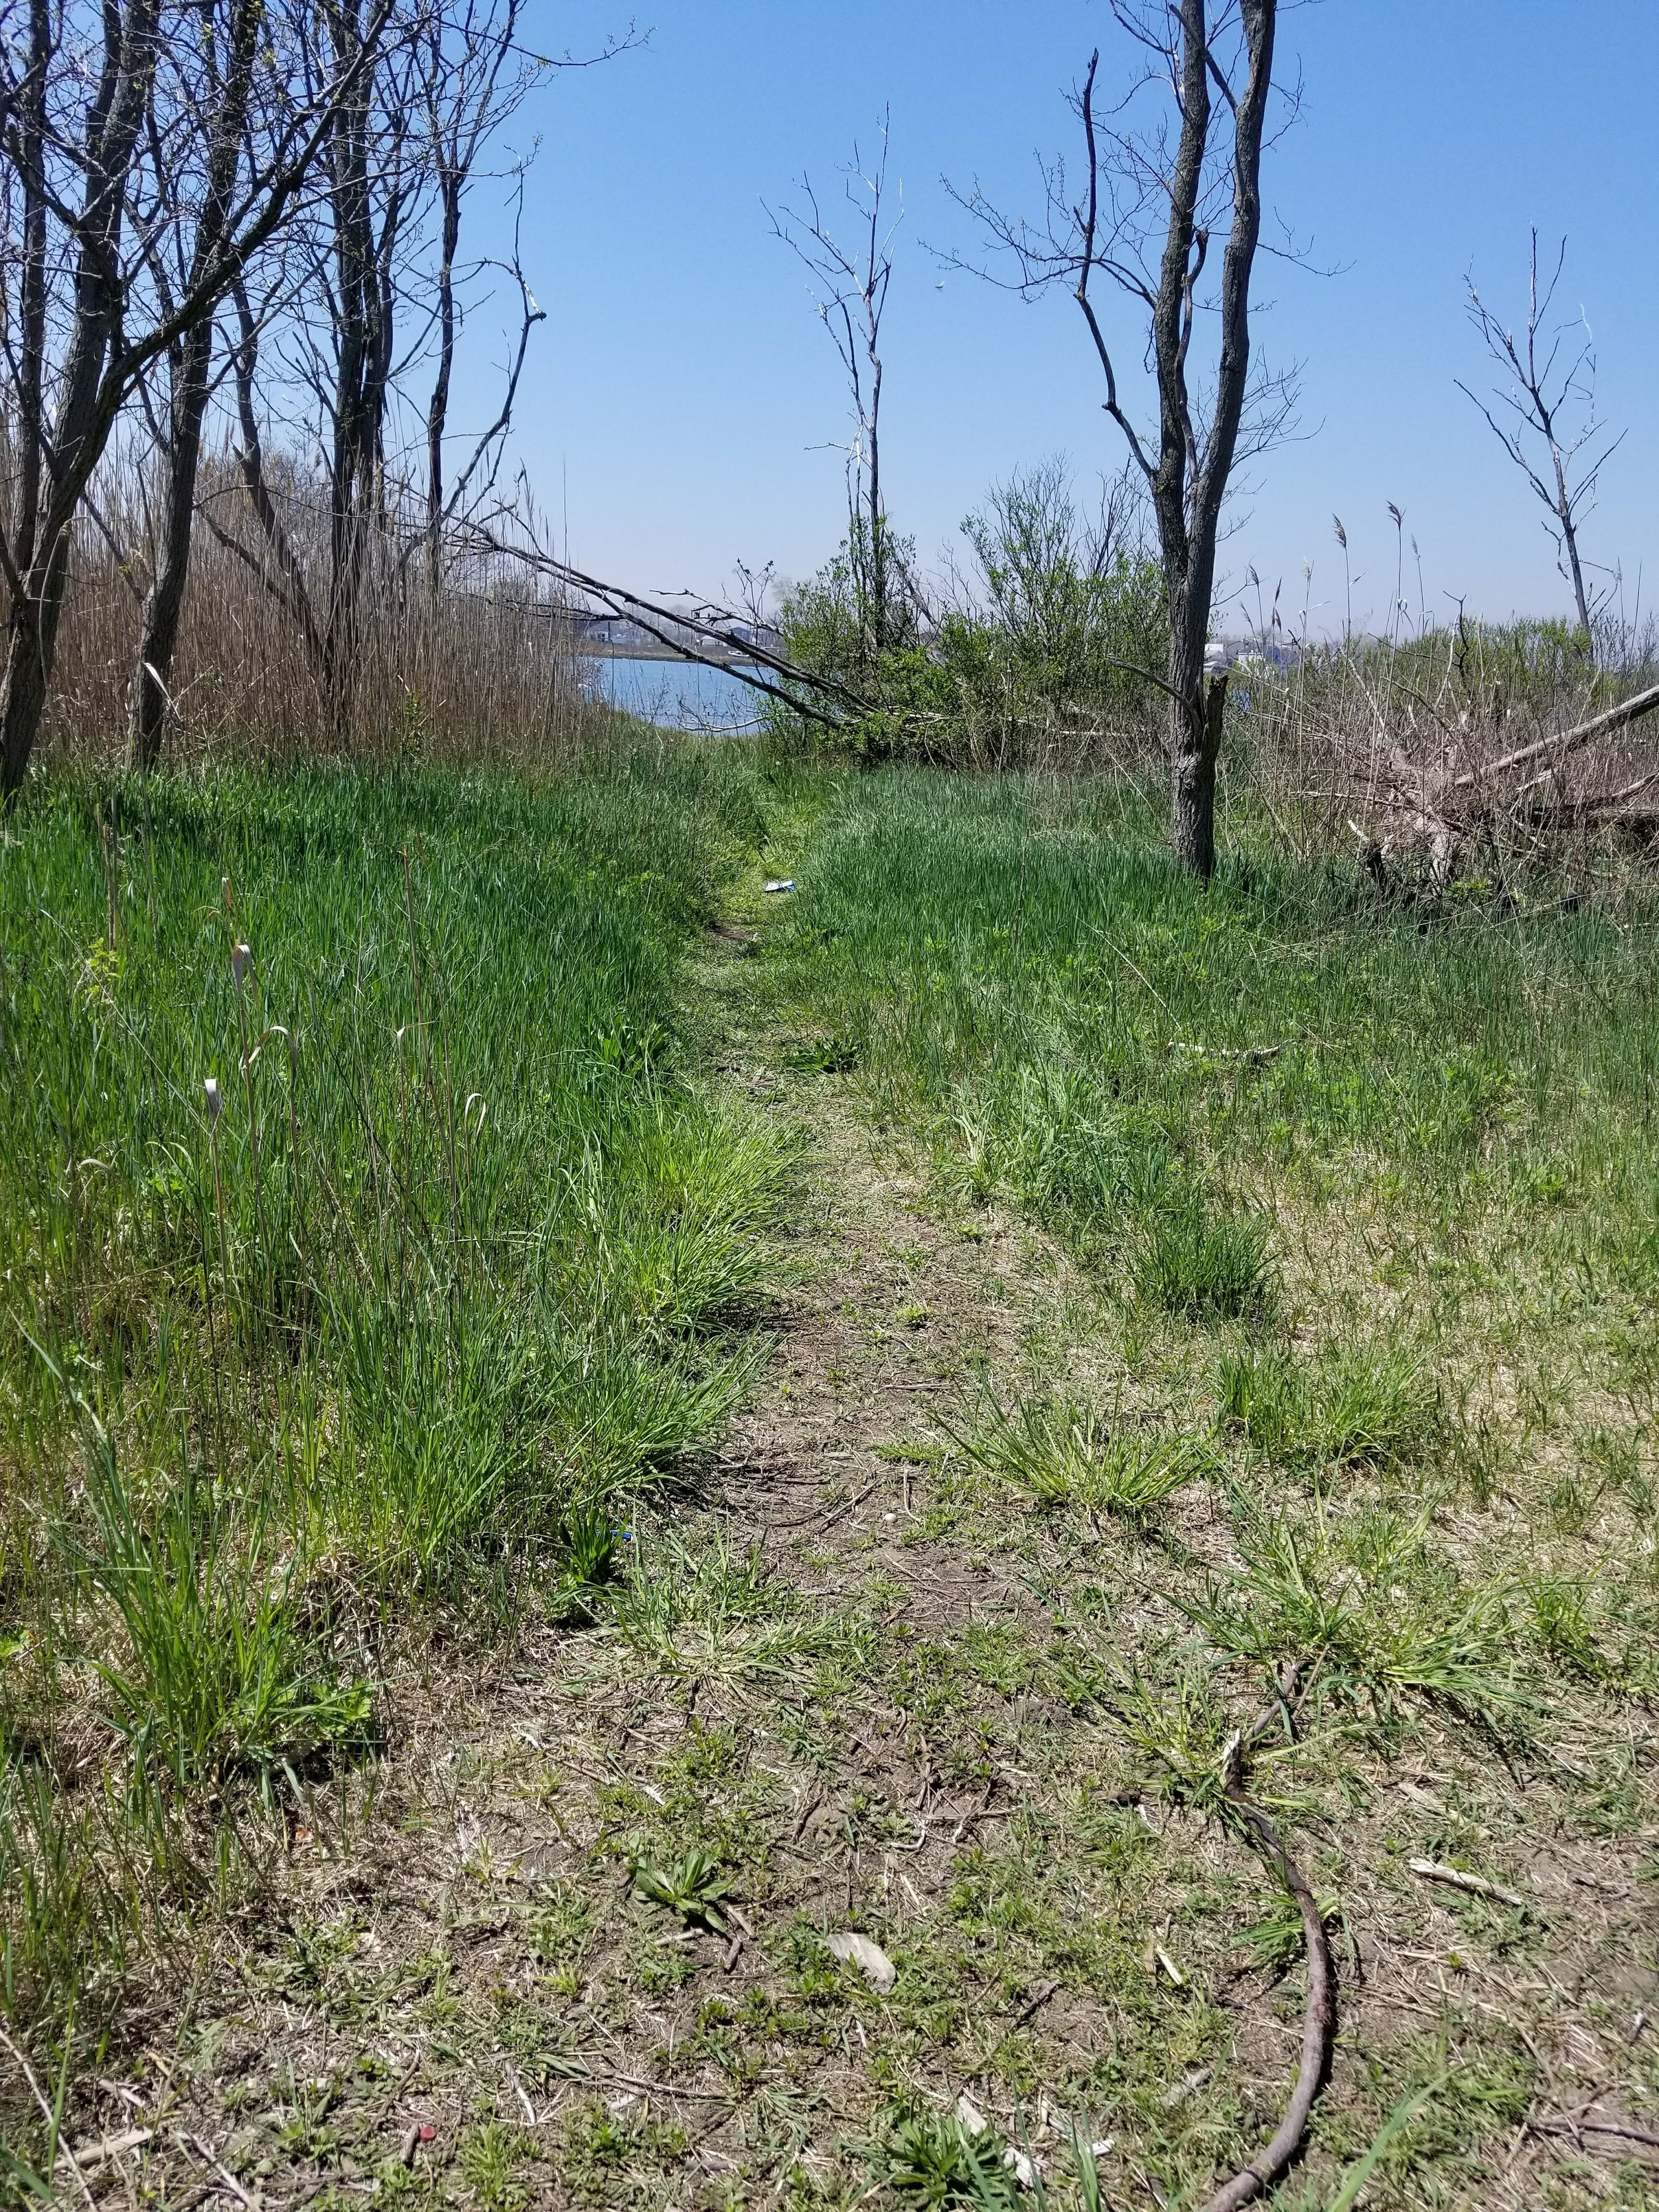 One mile of trail in Bayswater Park will be improved, enhancing public access and the user experience.